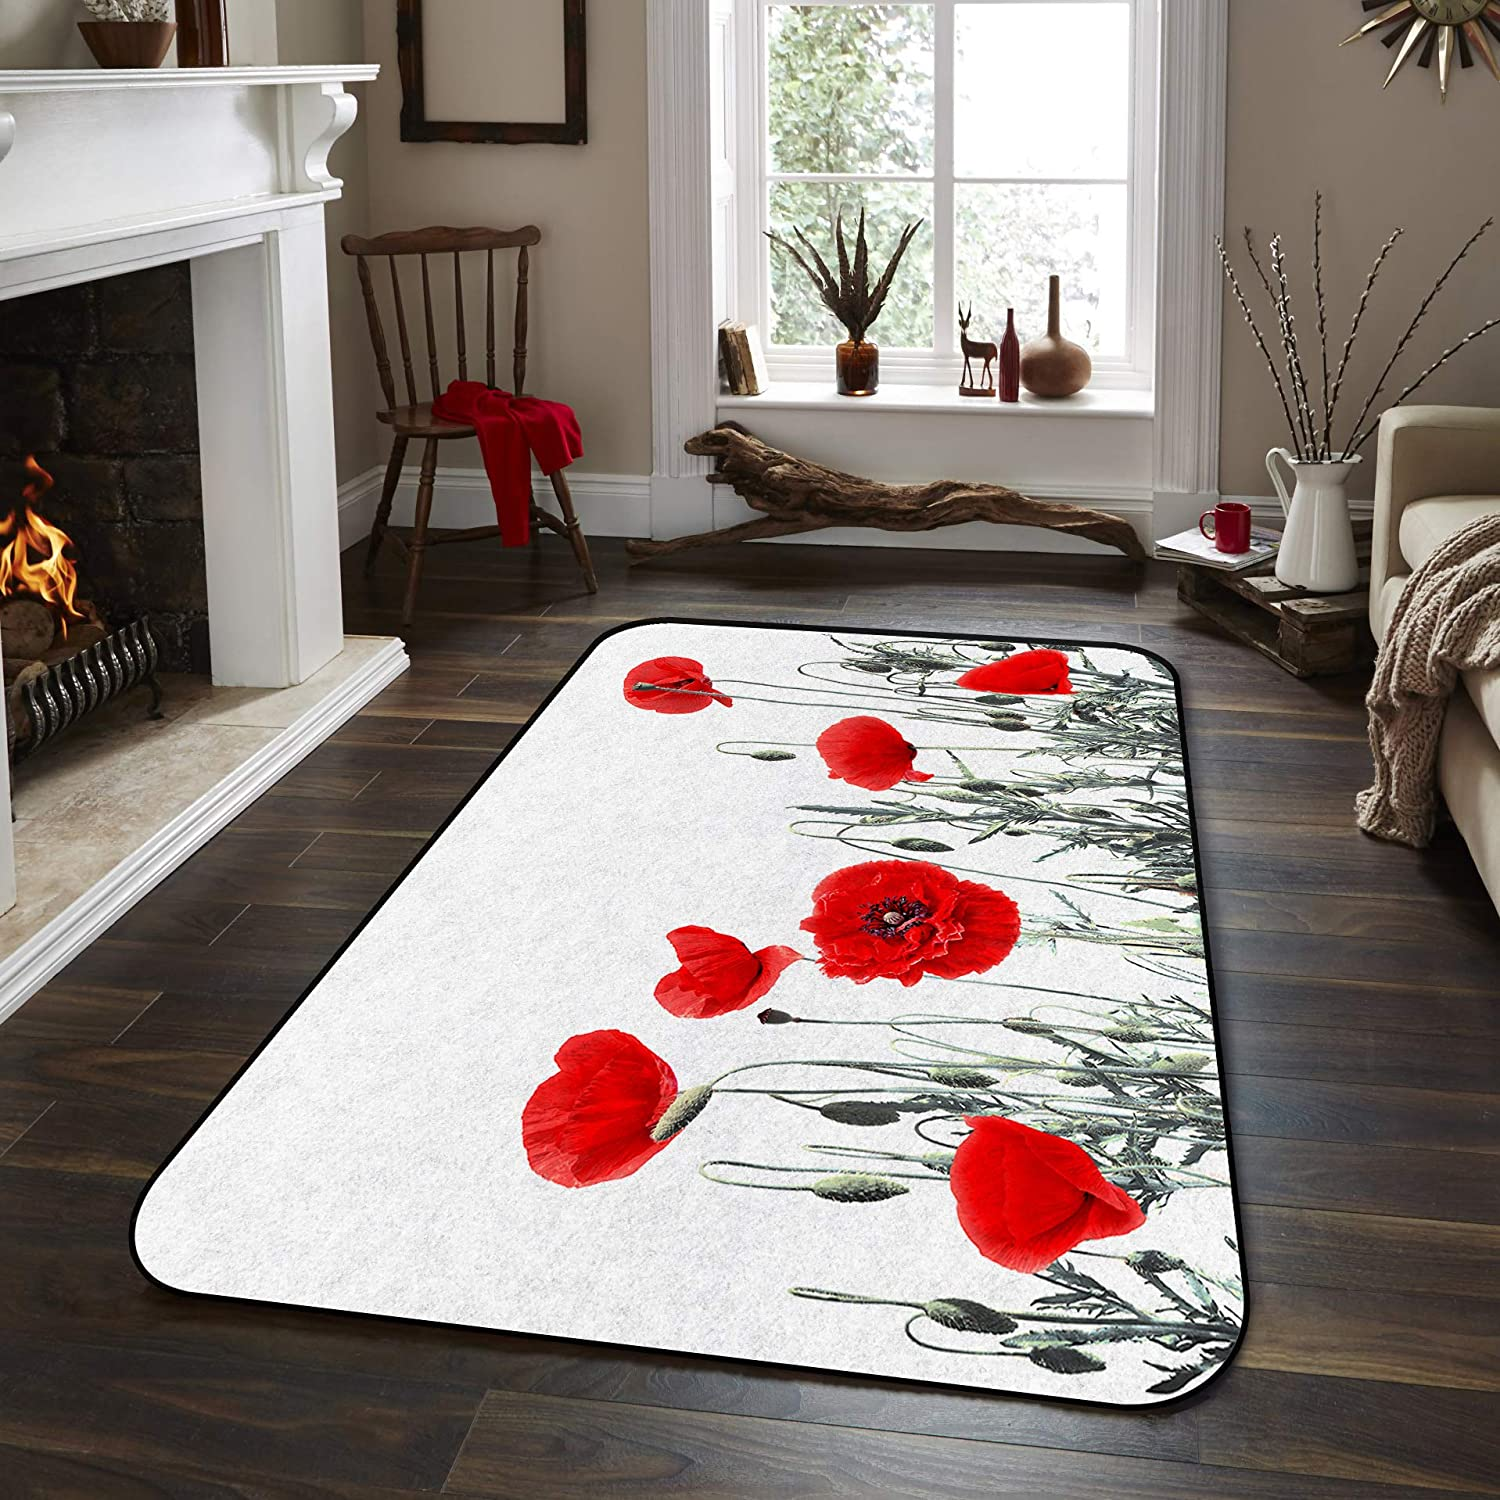 Fresno Mall Soft Area Rugs for Bedroom Poppies in Blooms Super sale Wildflowers Waterco